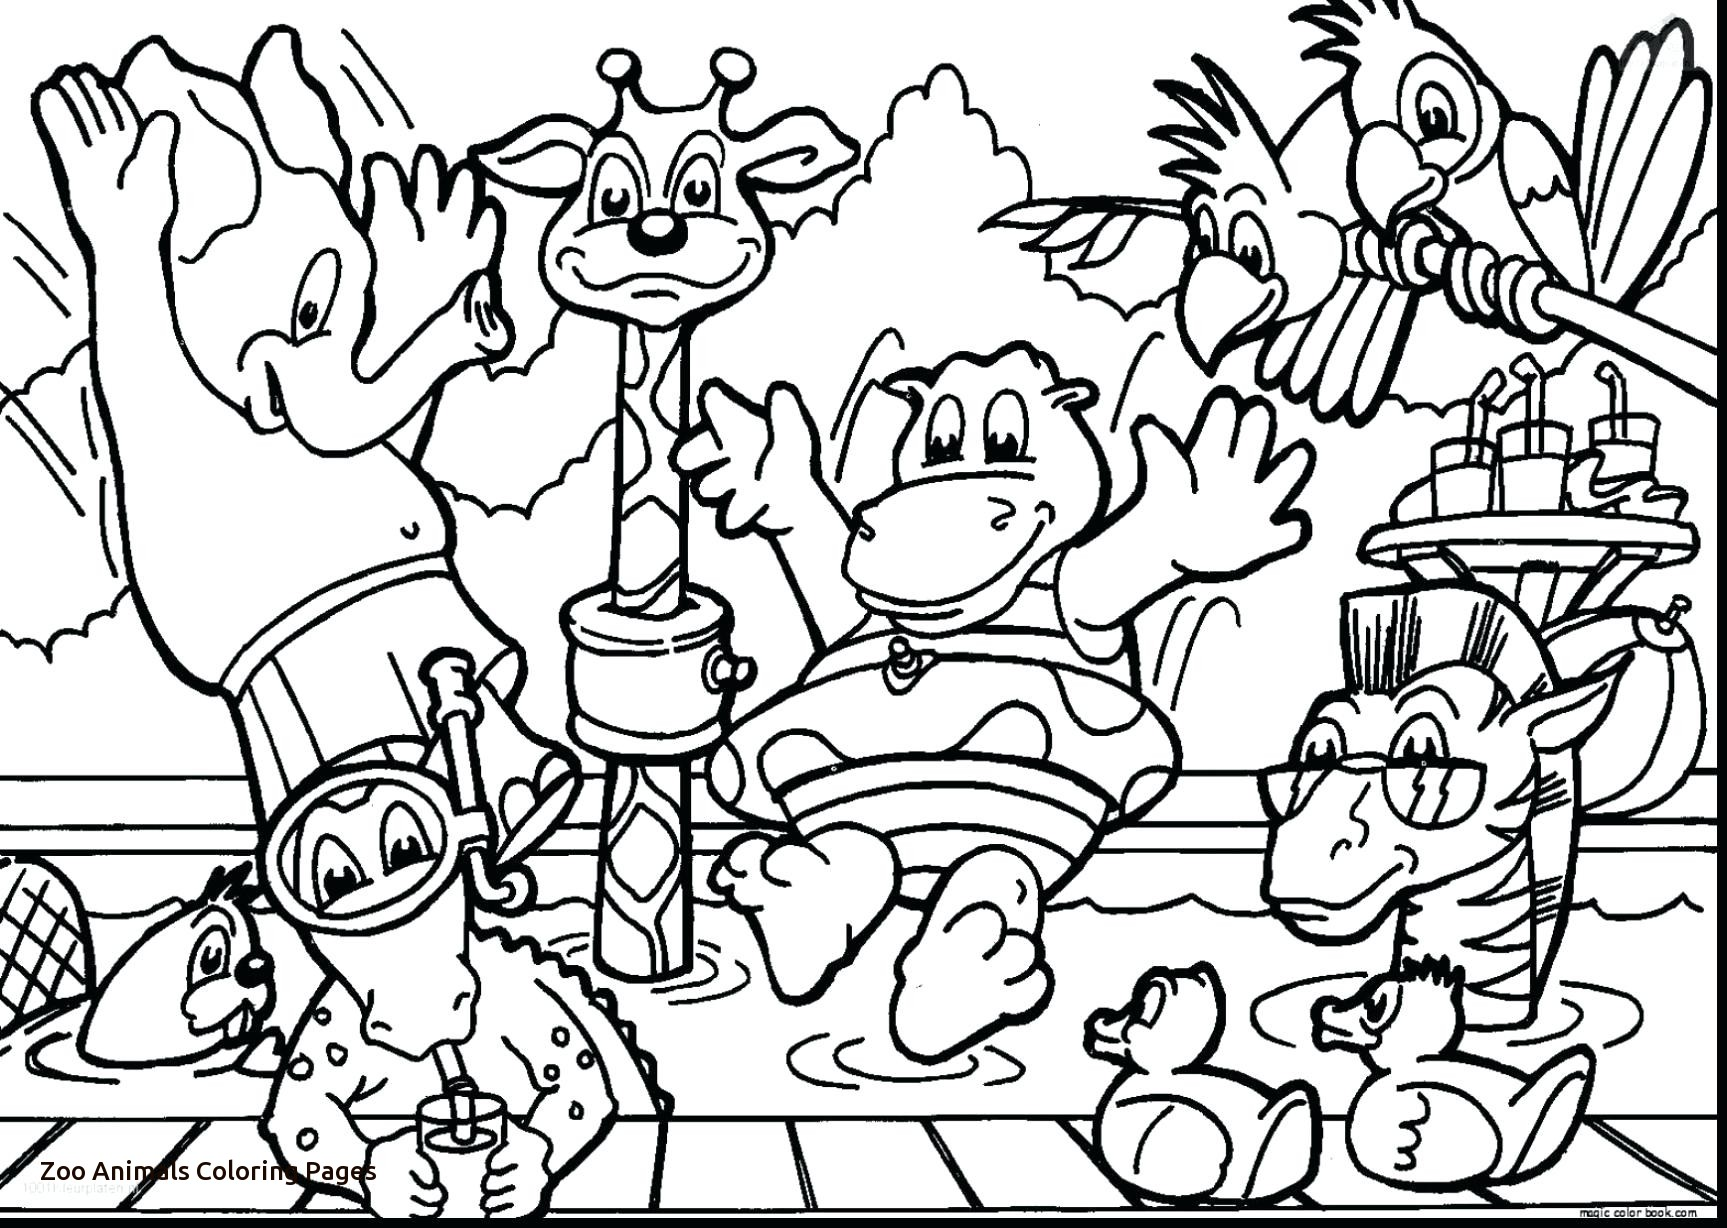 1727x1228 Jungle Animals Coloring Pages With Wallpaper Background Within